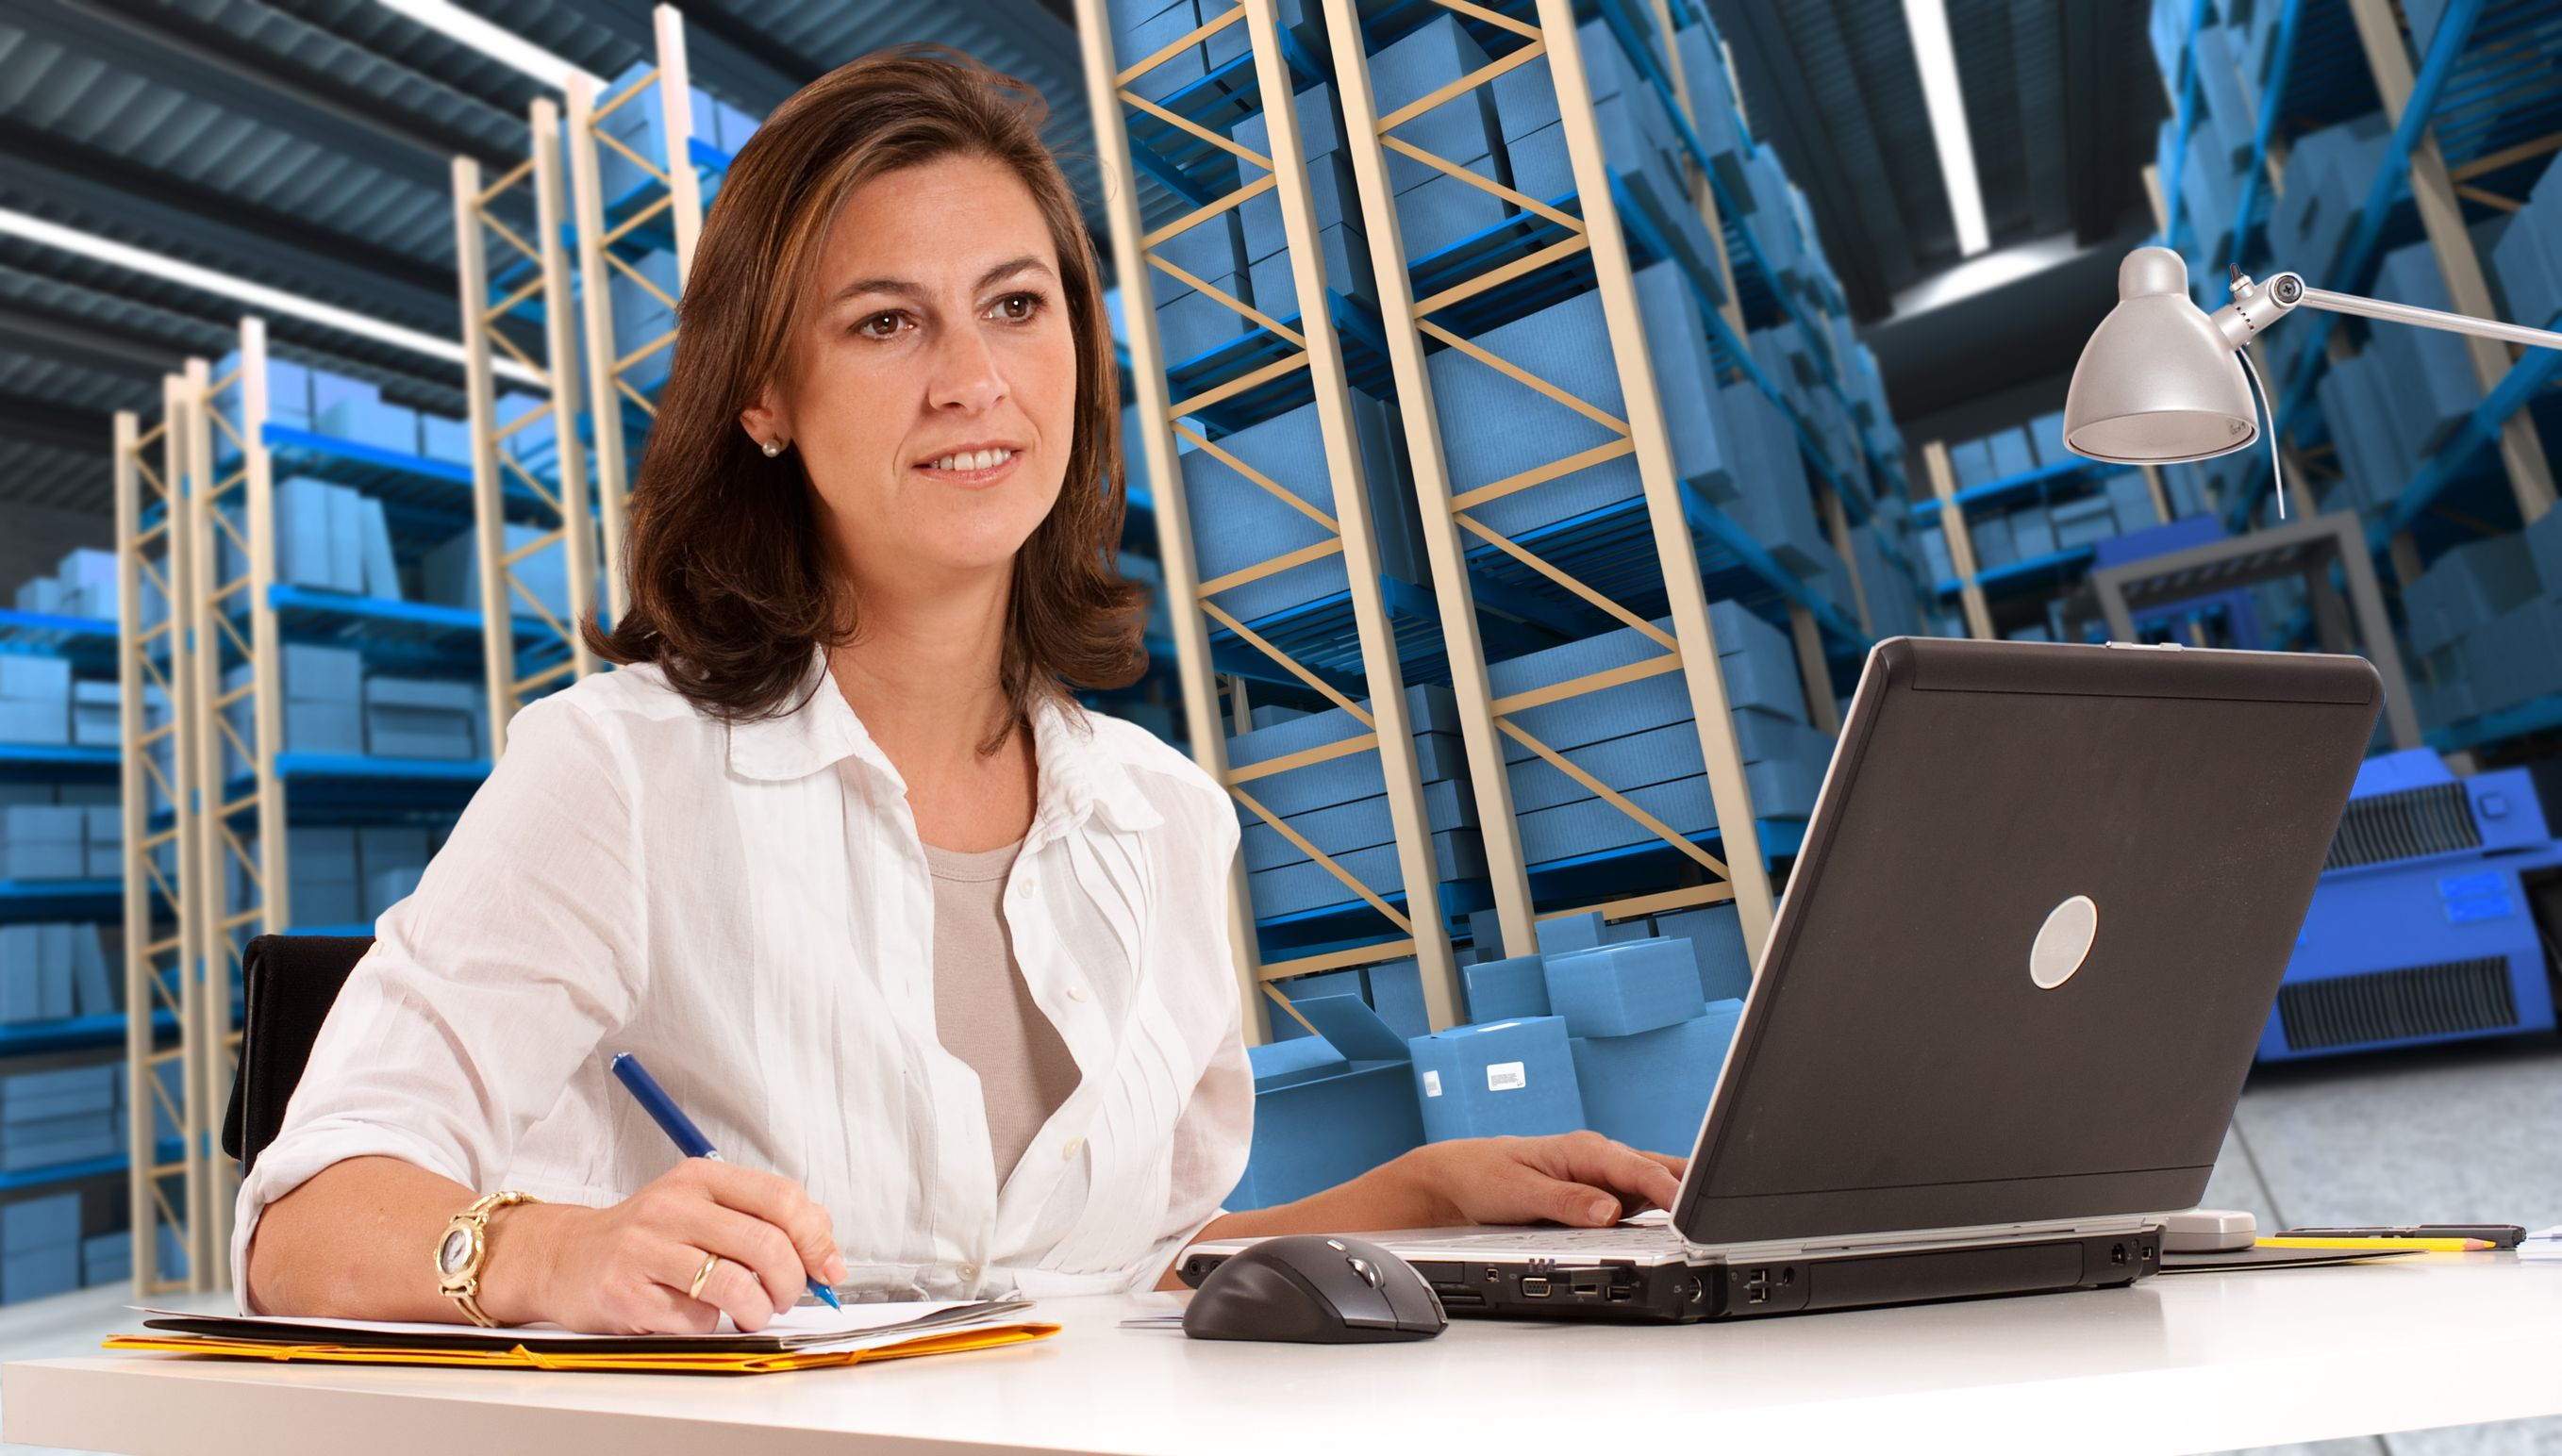 The Best Inventory Management Software Programs For Small Businesses